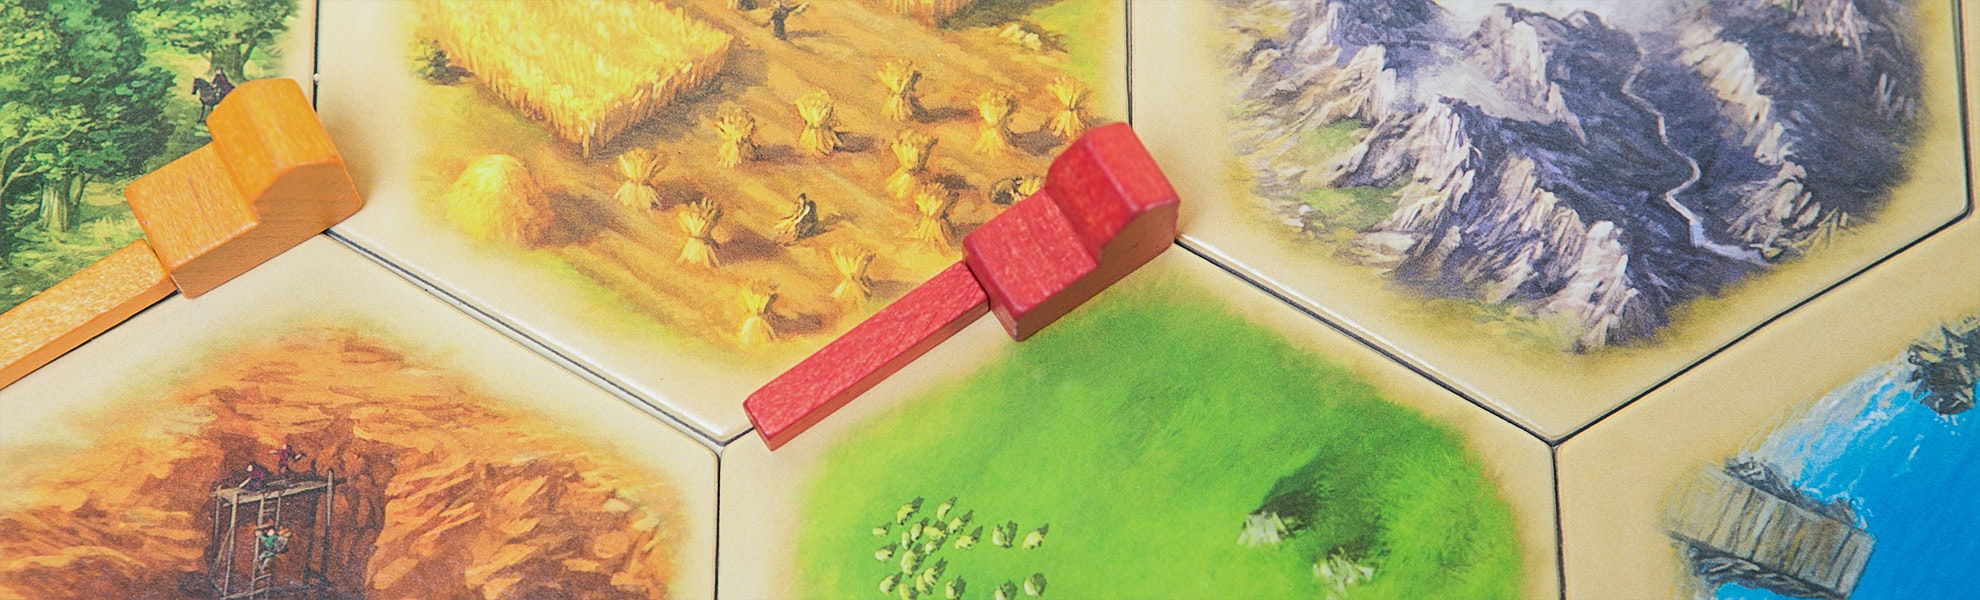 Settlers of Catan 5th Edition 4-pack